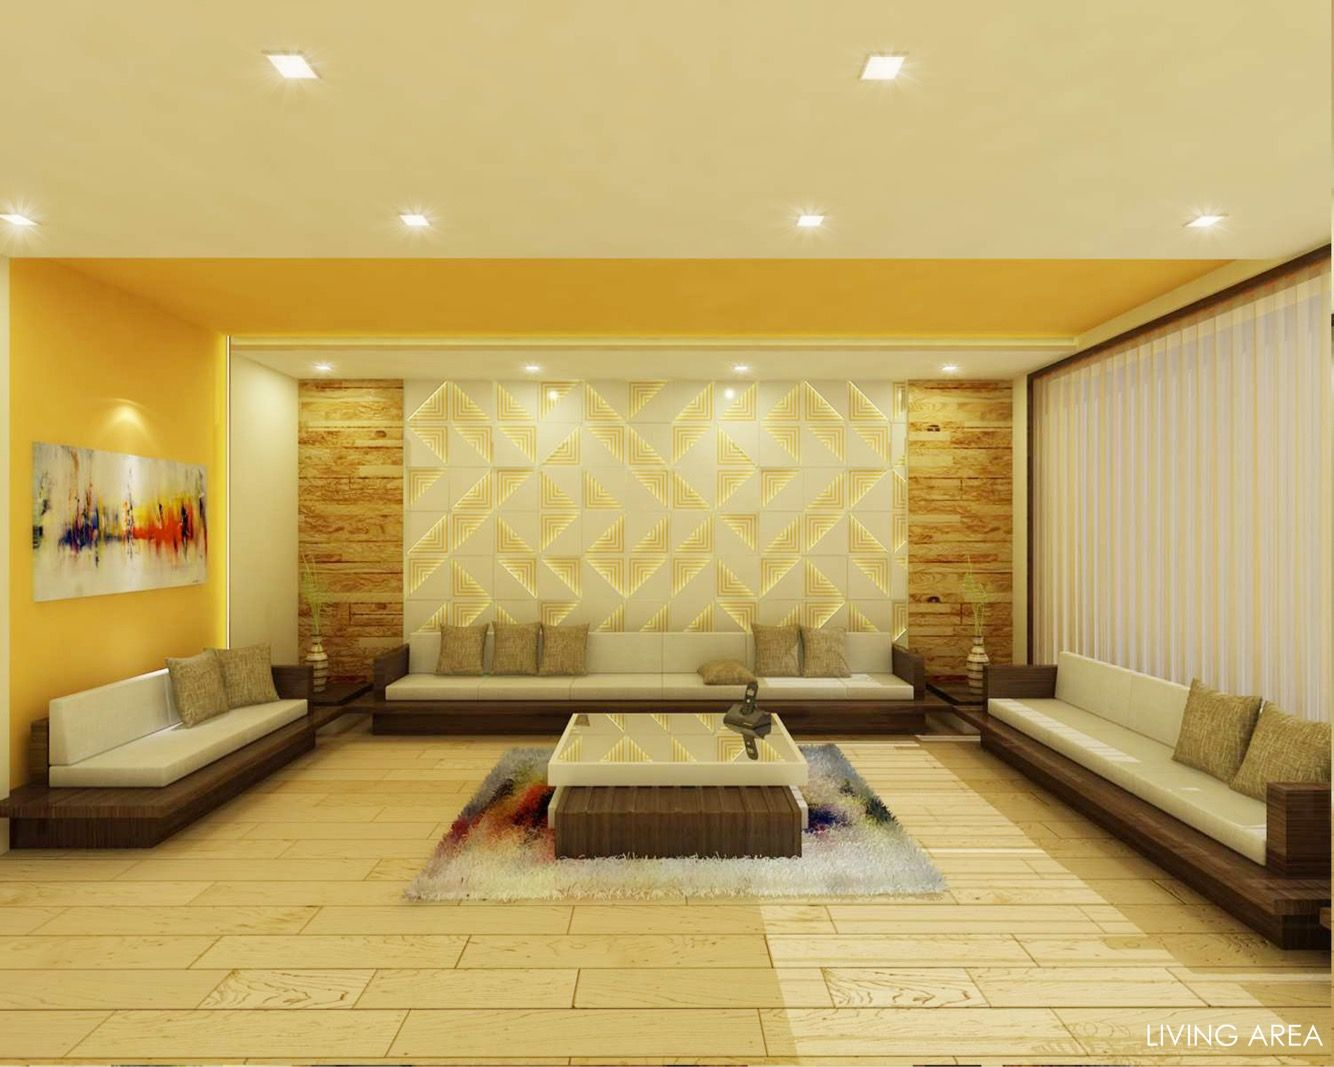 Pin by Right angles pvt ltd on Ankit agarwal nepal Home